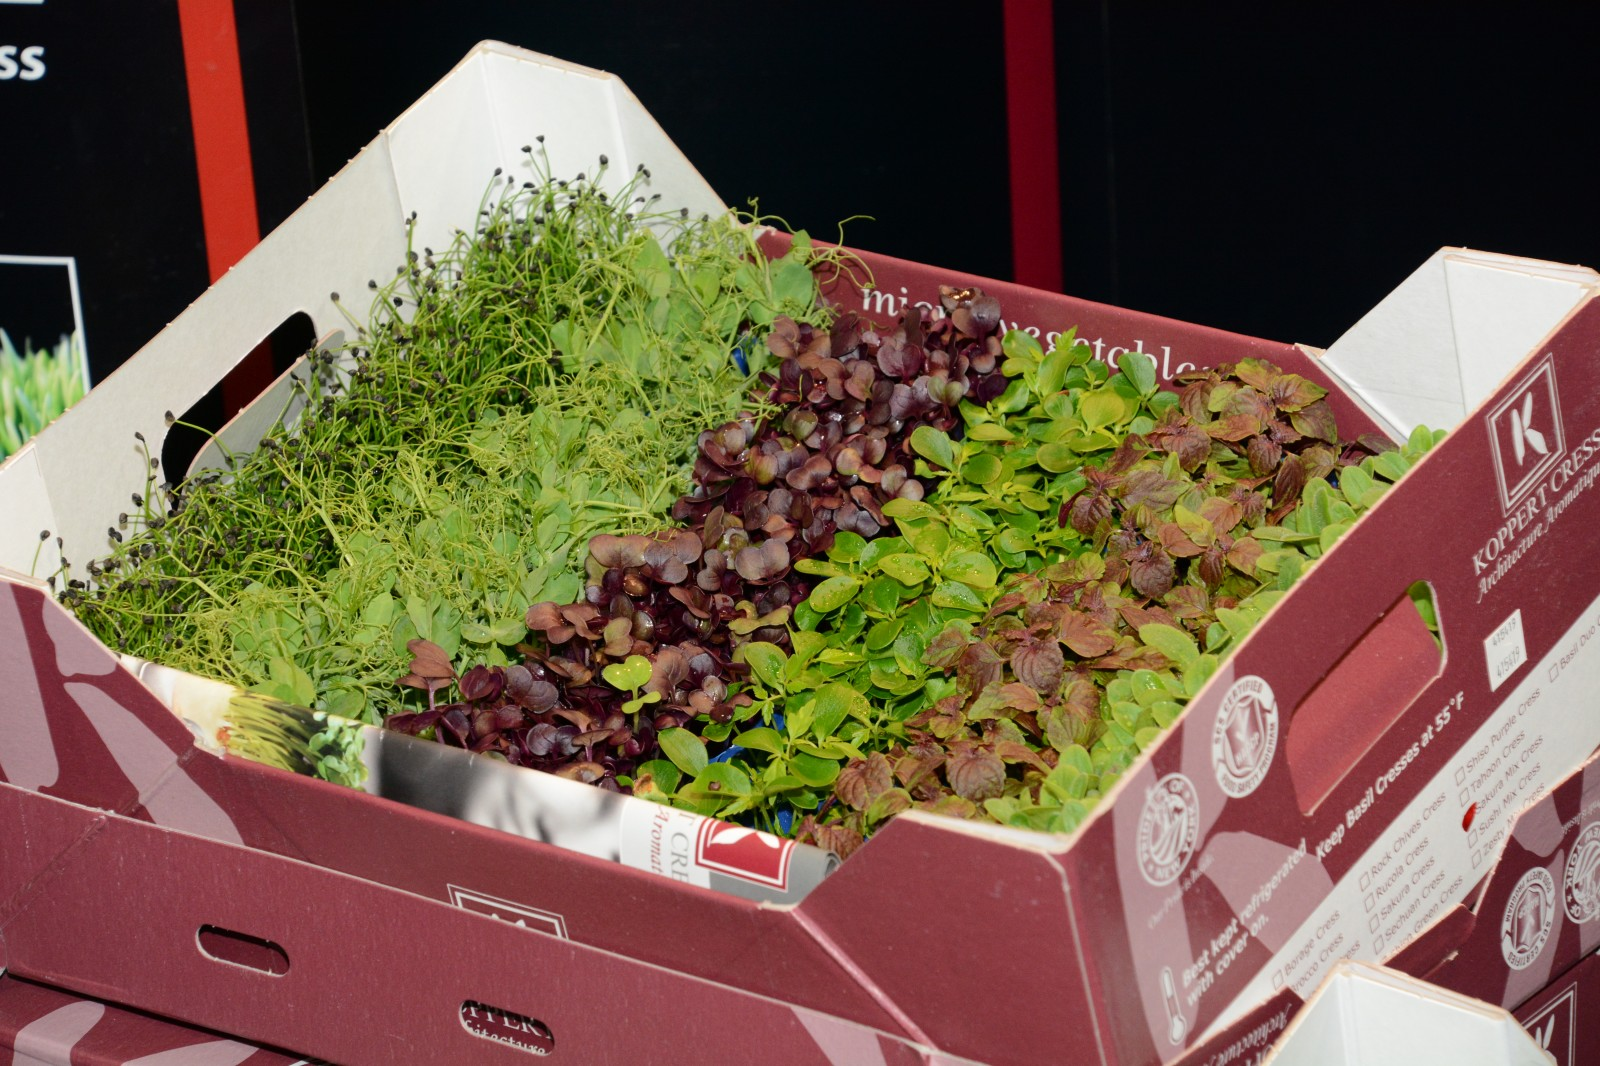 These are three photos of microgreens from Koppert Cress USA, which exhibited at the New York Produce Show in December. The person pictured is Koppert Cress USA's Natalia Gilligan. PHOTO/DEAN BARNES